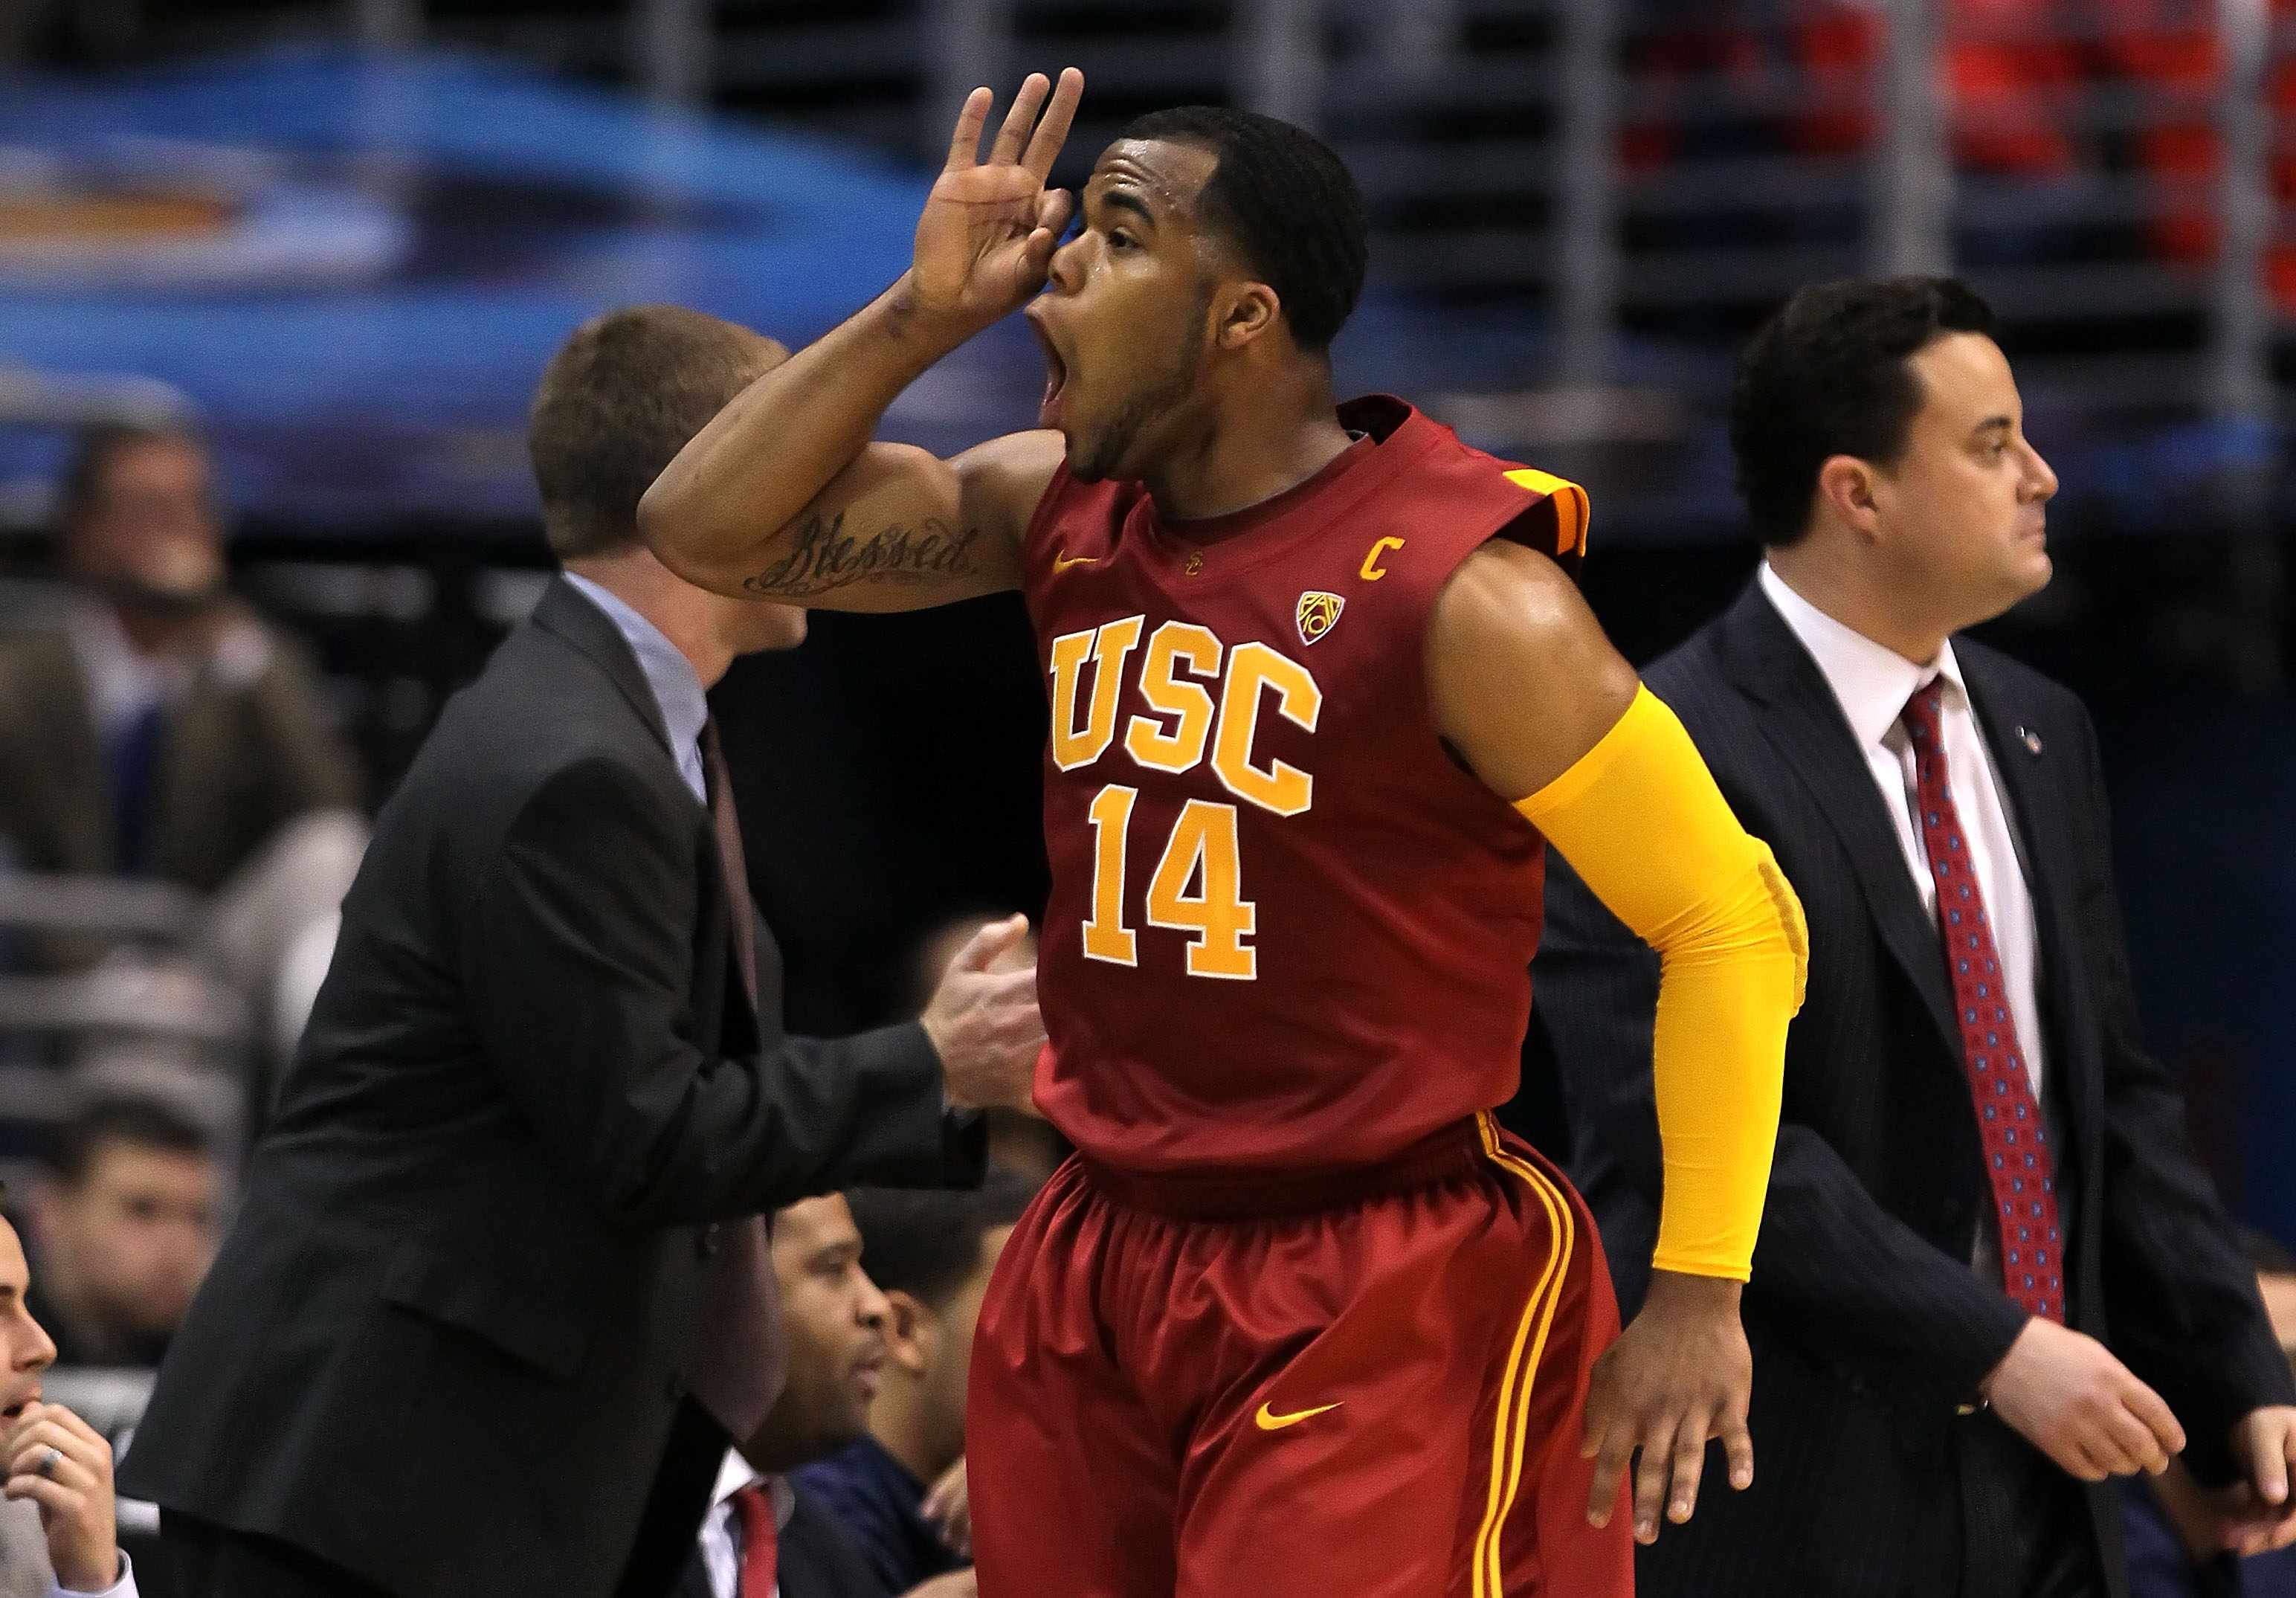 LOS ANGELES, CA - MARCH 11:  Donte Smith #14 of the USC Trojans reacts after making a basket in the first half against the Arizona Wildcats in the semifinals of the 2011 Pacific Life Pac-10 Men's Basketball Tournament at Staples Center on March 11, 2011 i